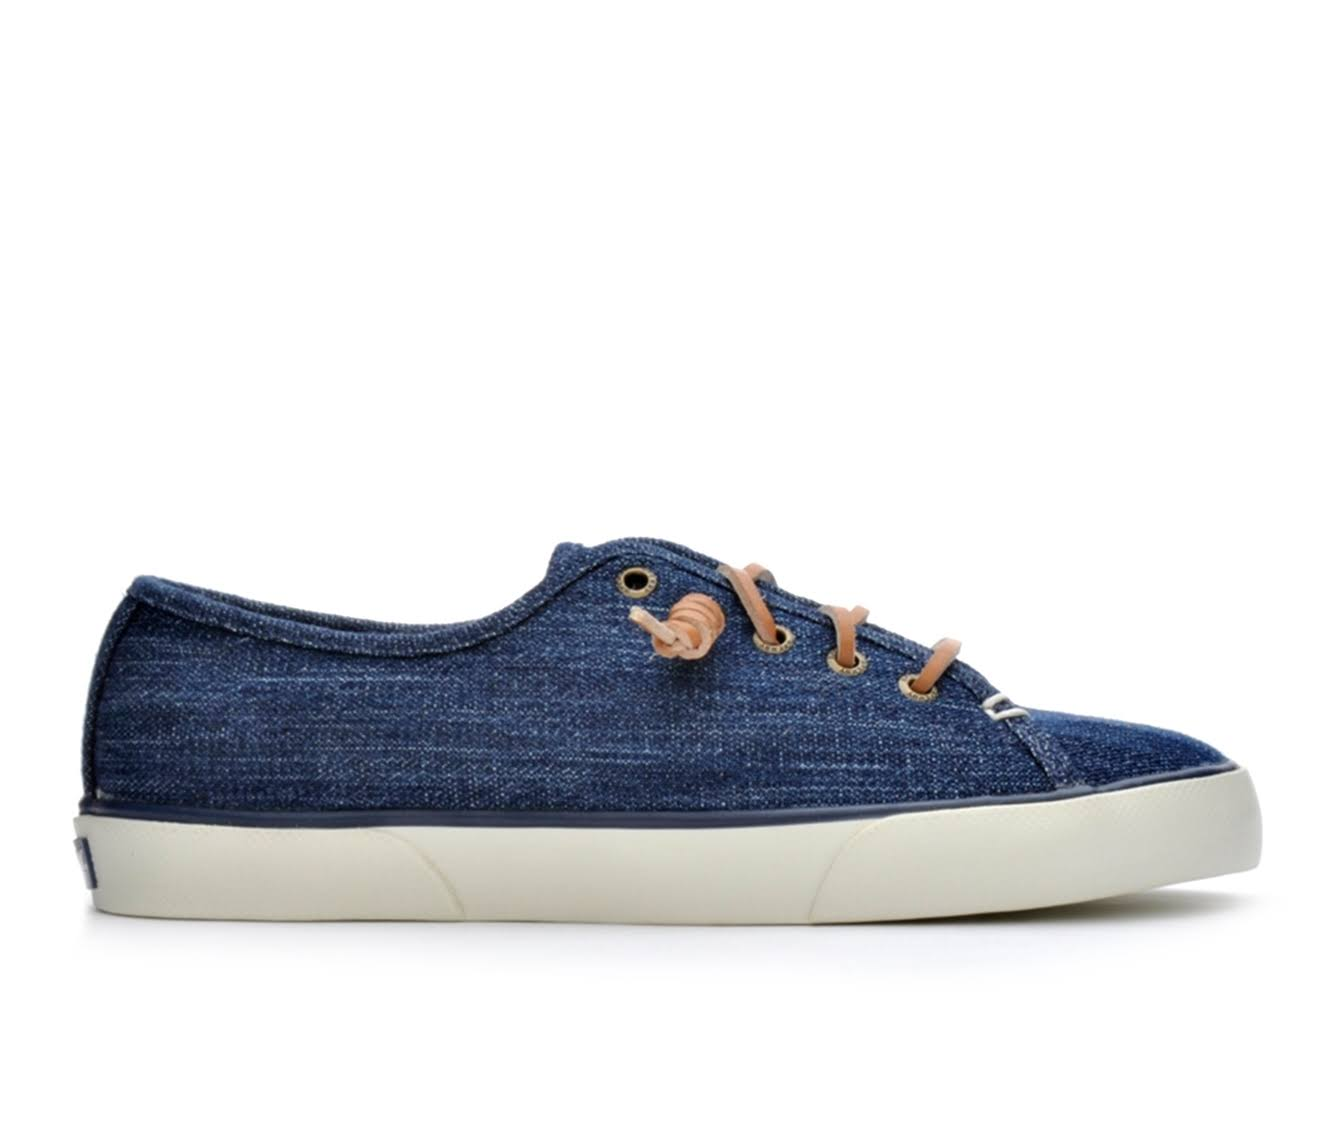 sider Core Pier Top Denim Sperry Dames View ZkXiuP